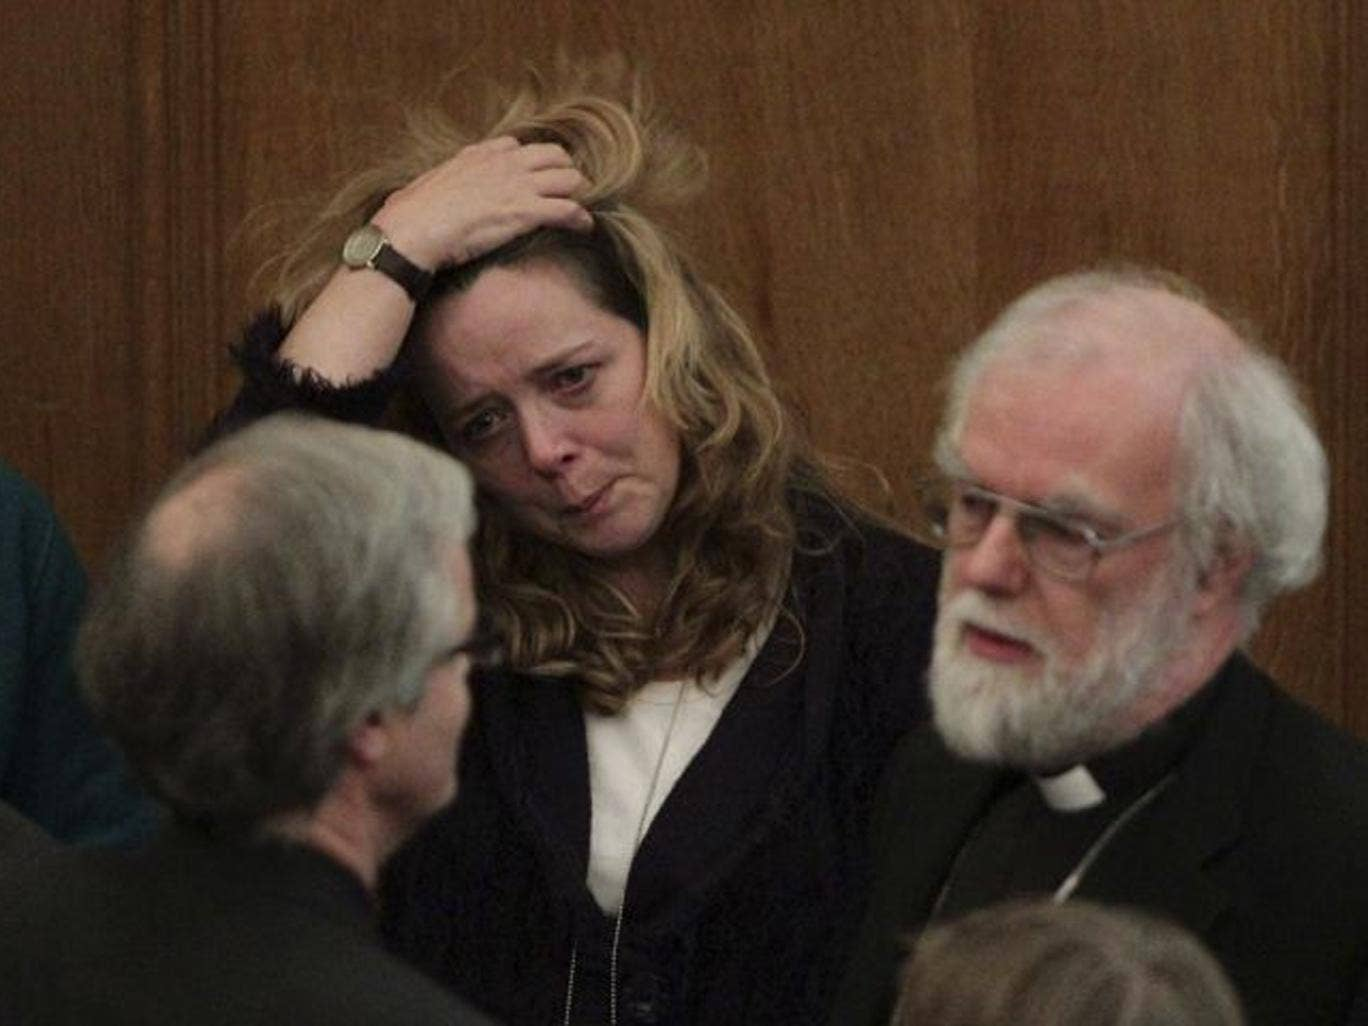 Canon Paula Gooder looks on alongside Rowan Williams, the outgoing Archbishop of Canterbury, after the decision is announced